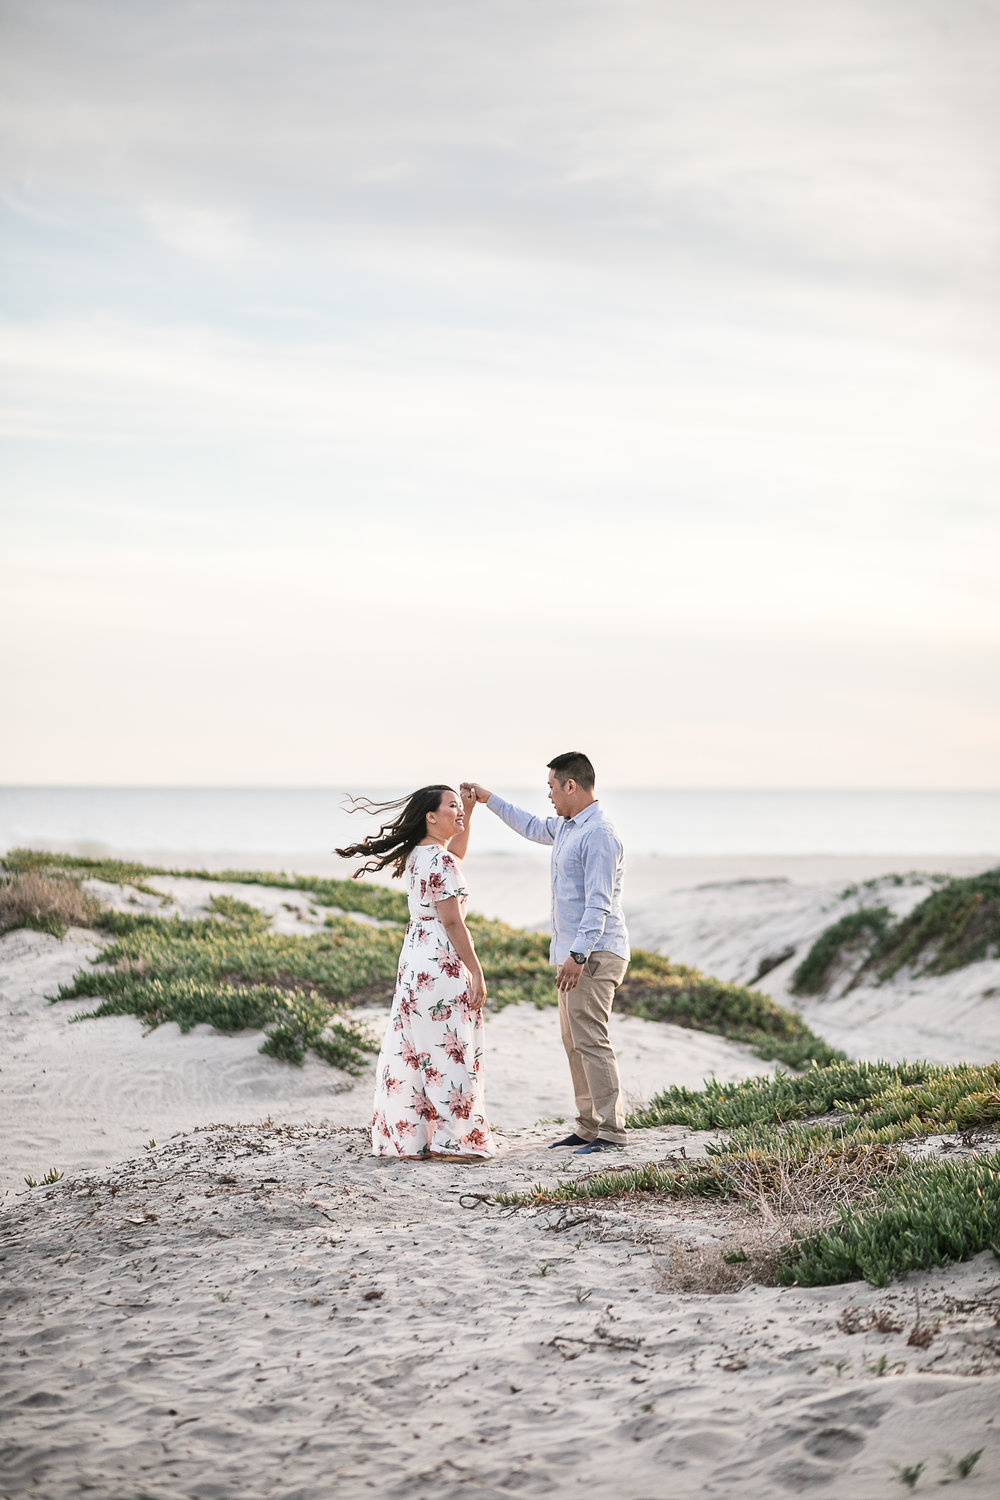 Tiffany and Erick's Balboa Park and Coronado Engagement Session-20.jpg